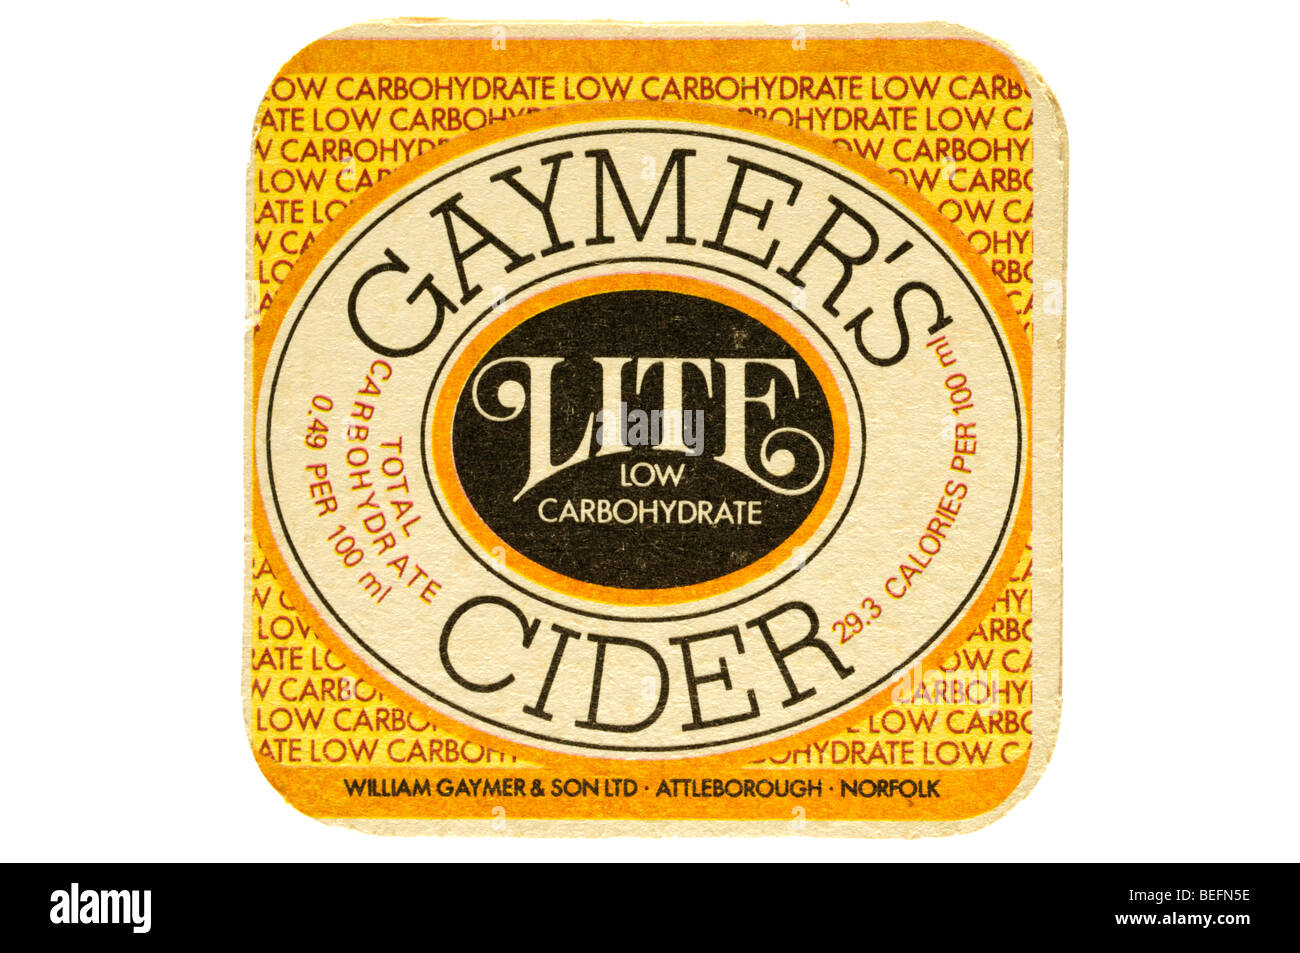 low carbohydrate beer mat gaymers cider lite - Stock Image